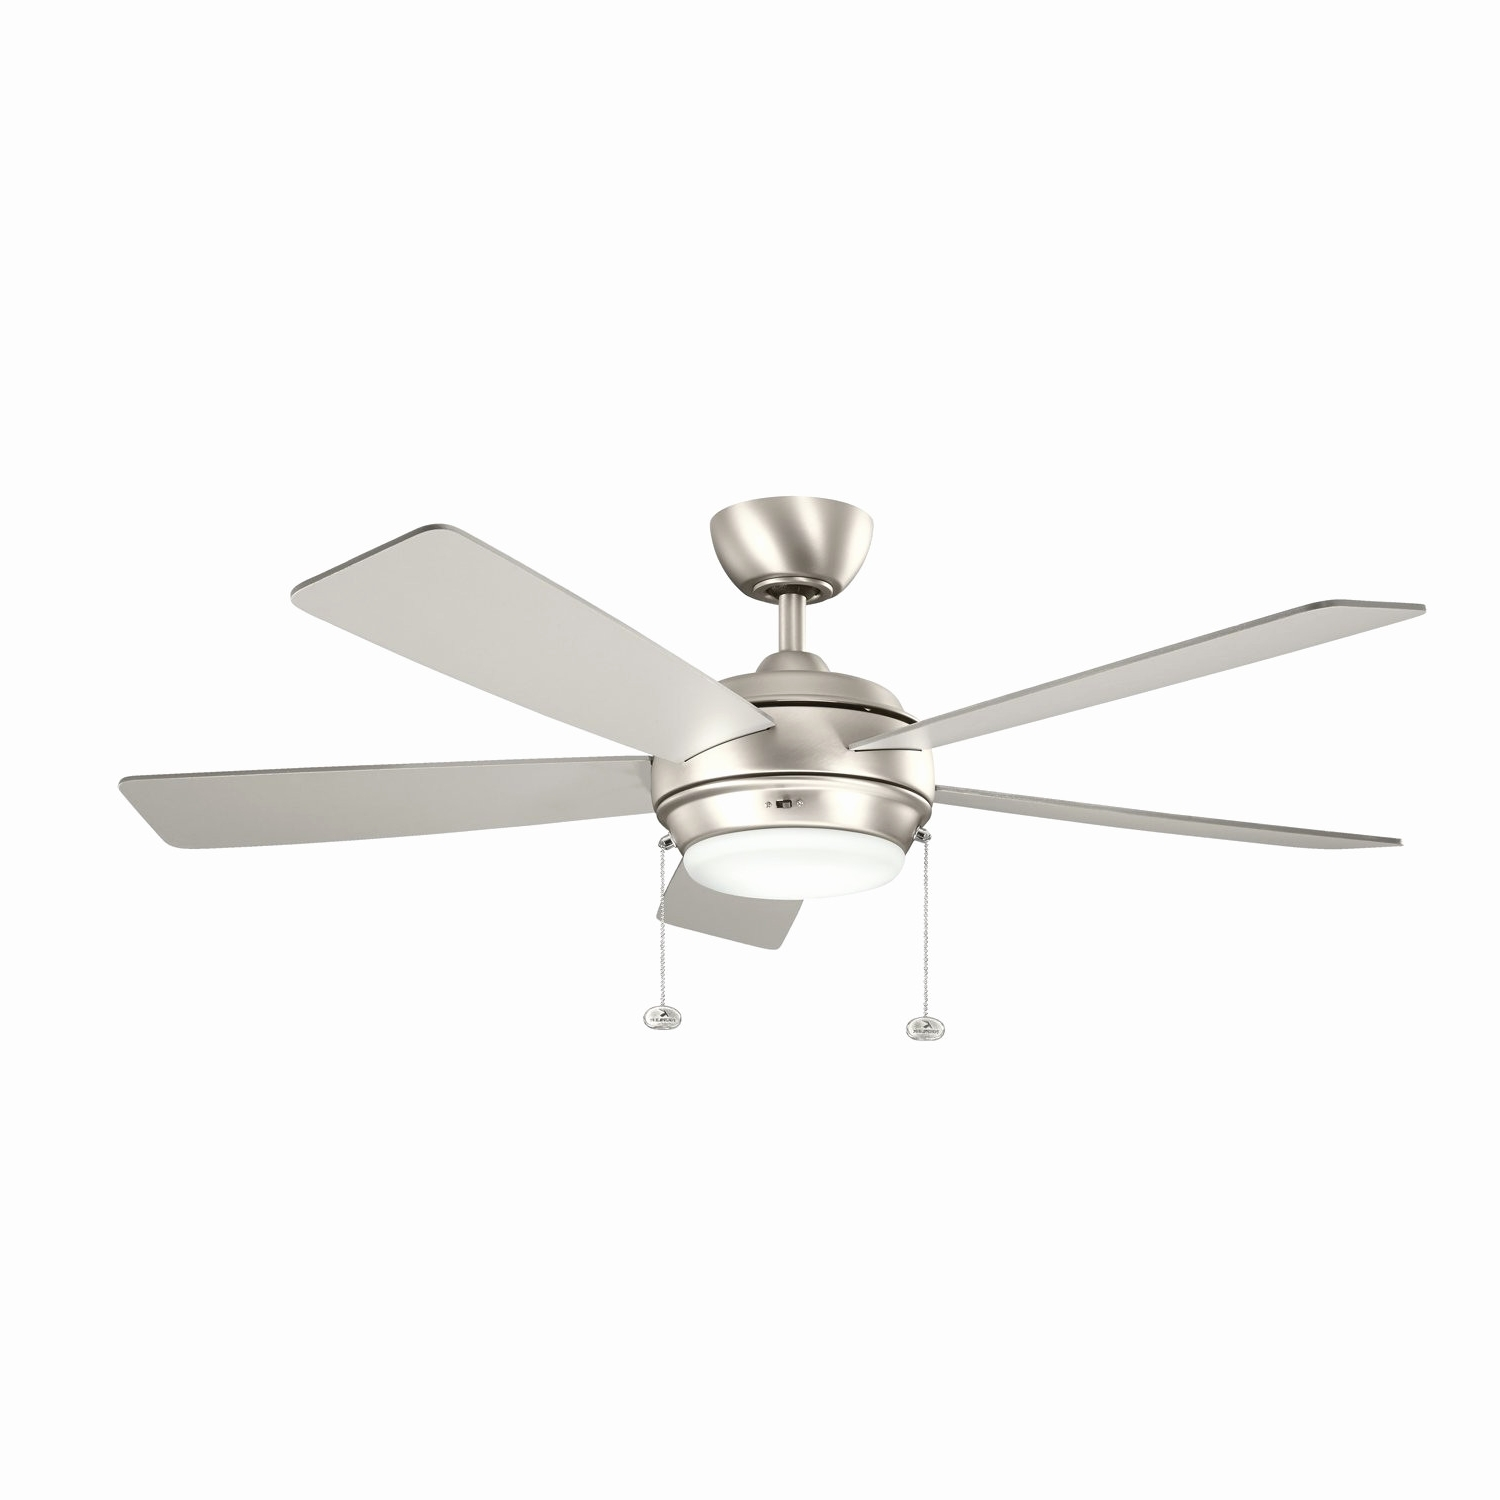 Outdoor Ceiling Fans With Downrod Throughout Most Up To Date White Outdoor Ceiling Fan Beautiful Best Downrod Ceiling Fan 9 S (View 13 of 20)